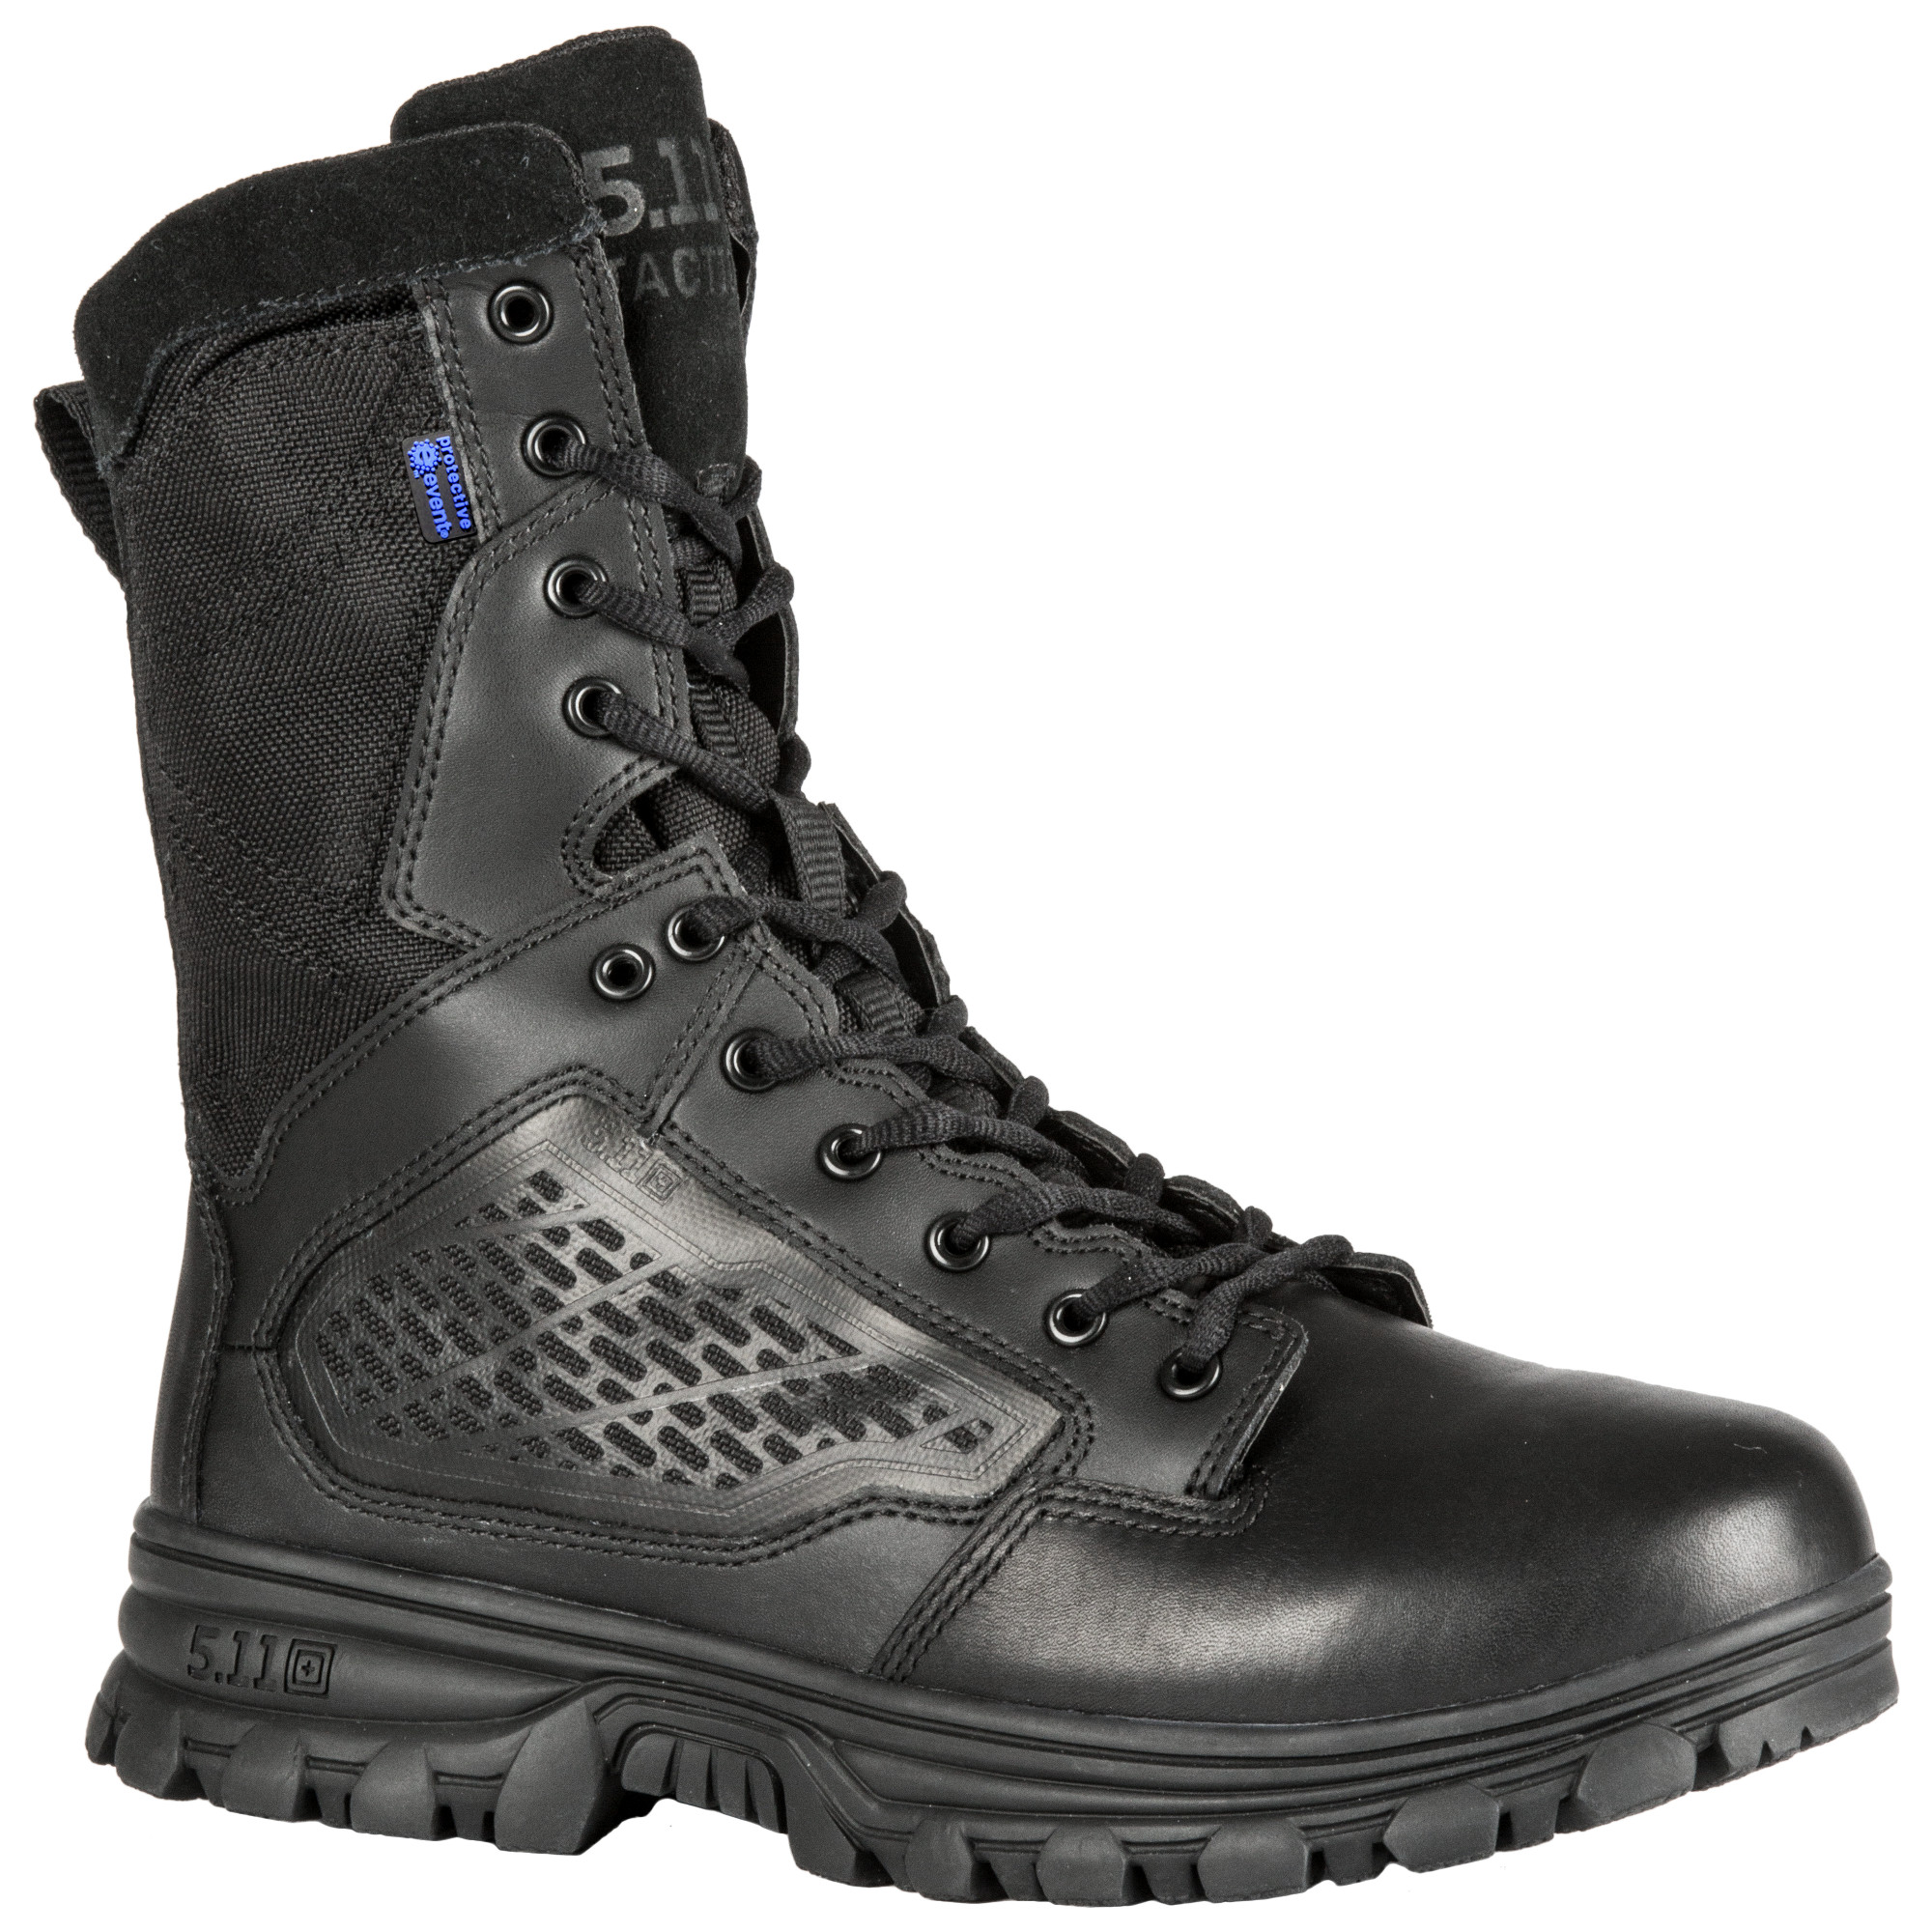 5.11 Tactical Men EVO 8 Insulated Side Zip Boot (Black) thumbnail